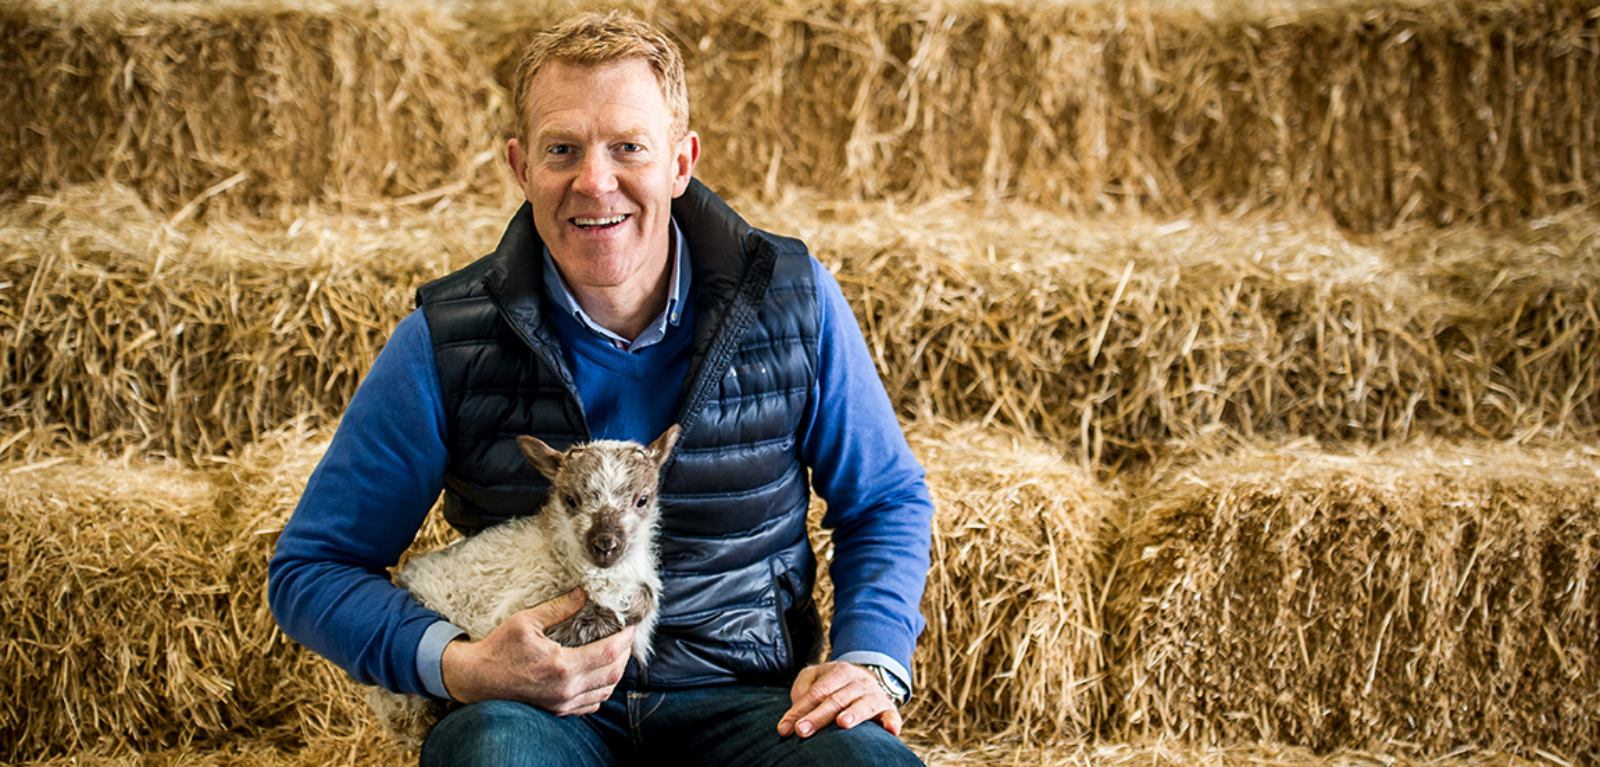 British Farmer Adam Henson, dressed in blue and black, posing with a lamb in front of a backdrop of Hay. Promotional image for the New Adam Henson Bed Collection in partnership with Harrison Spinks